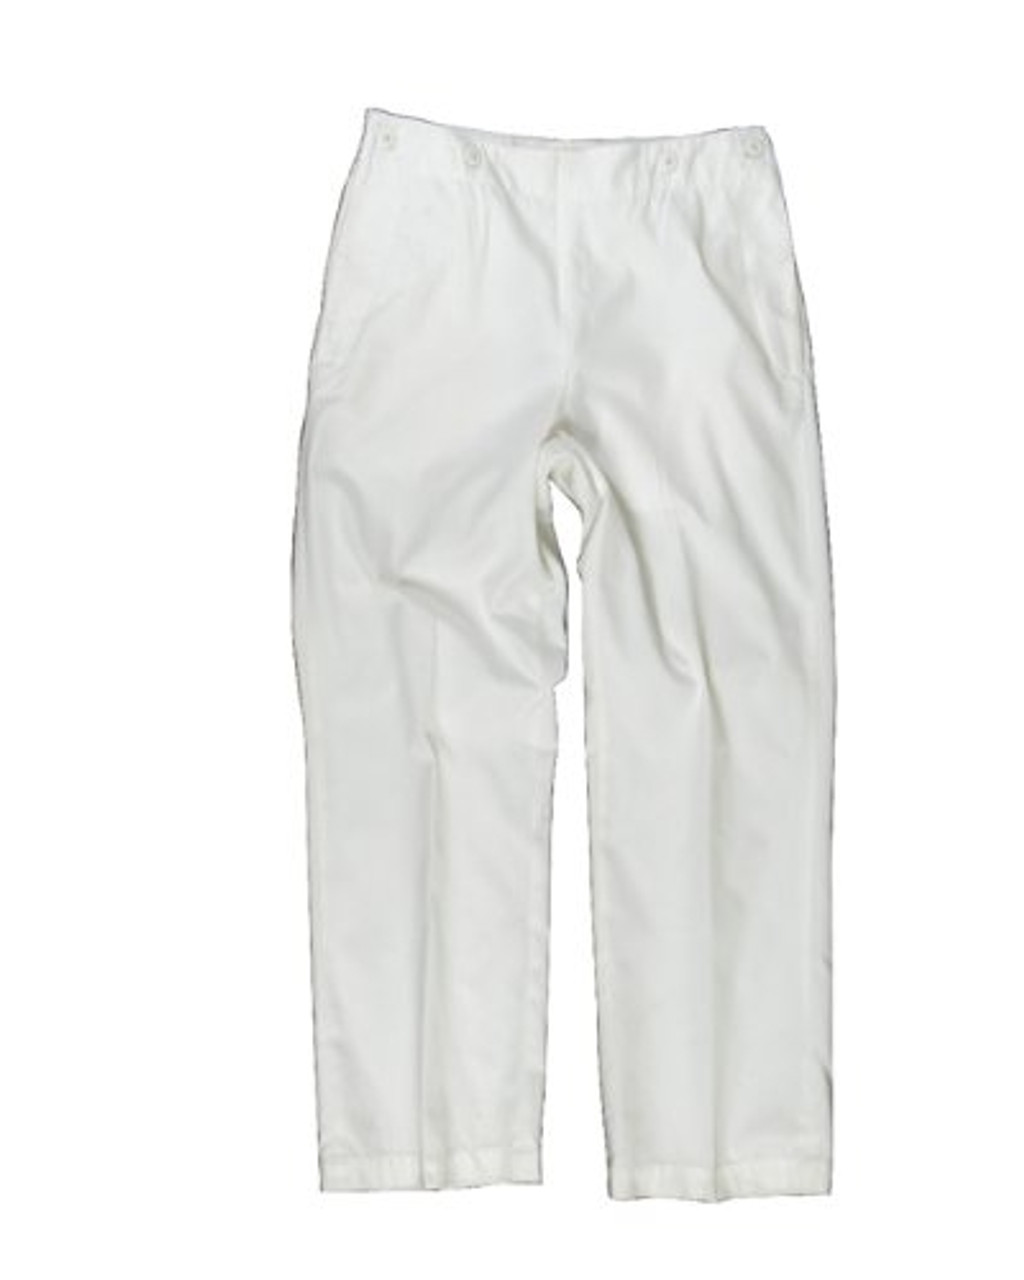 German Navy White Sailor Trousers from Hessen Surplus